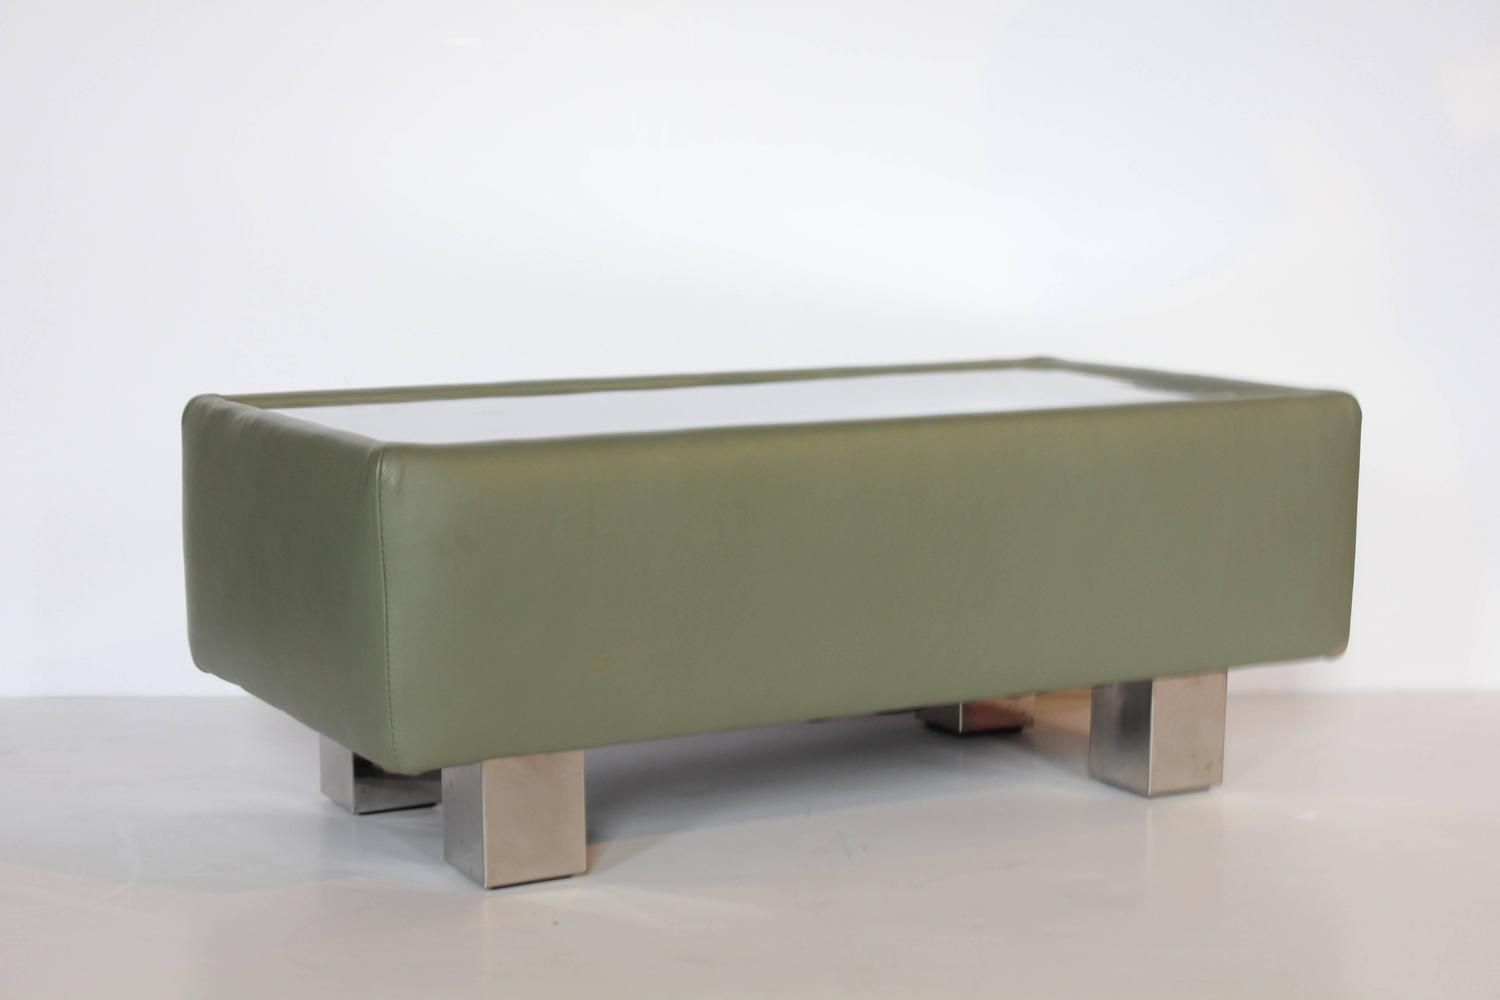 Stylish Modern Leather And Metal Ottoman Or Coffee Table For Sale At 1stdibs